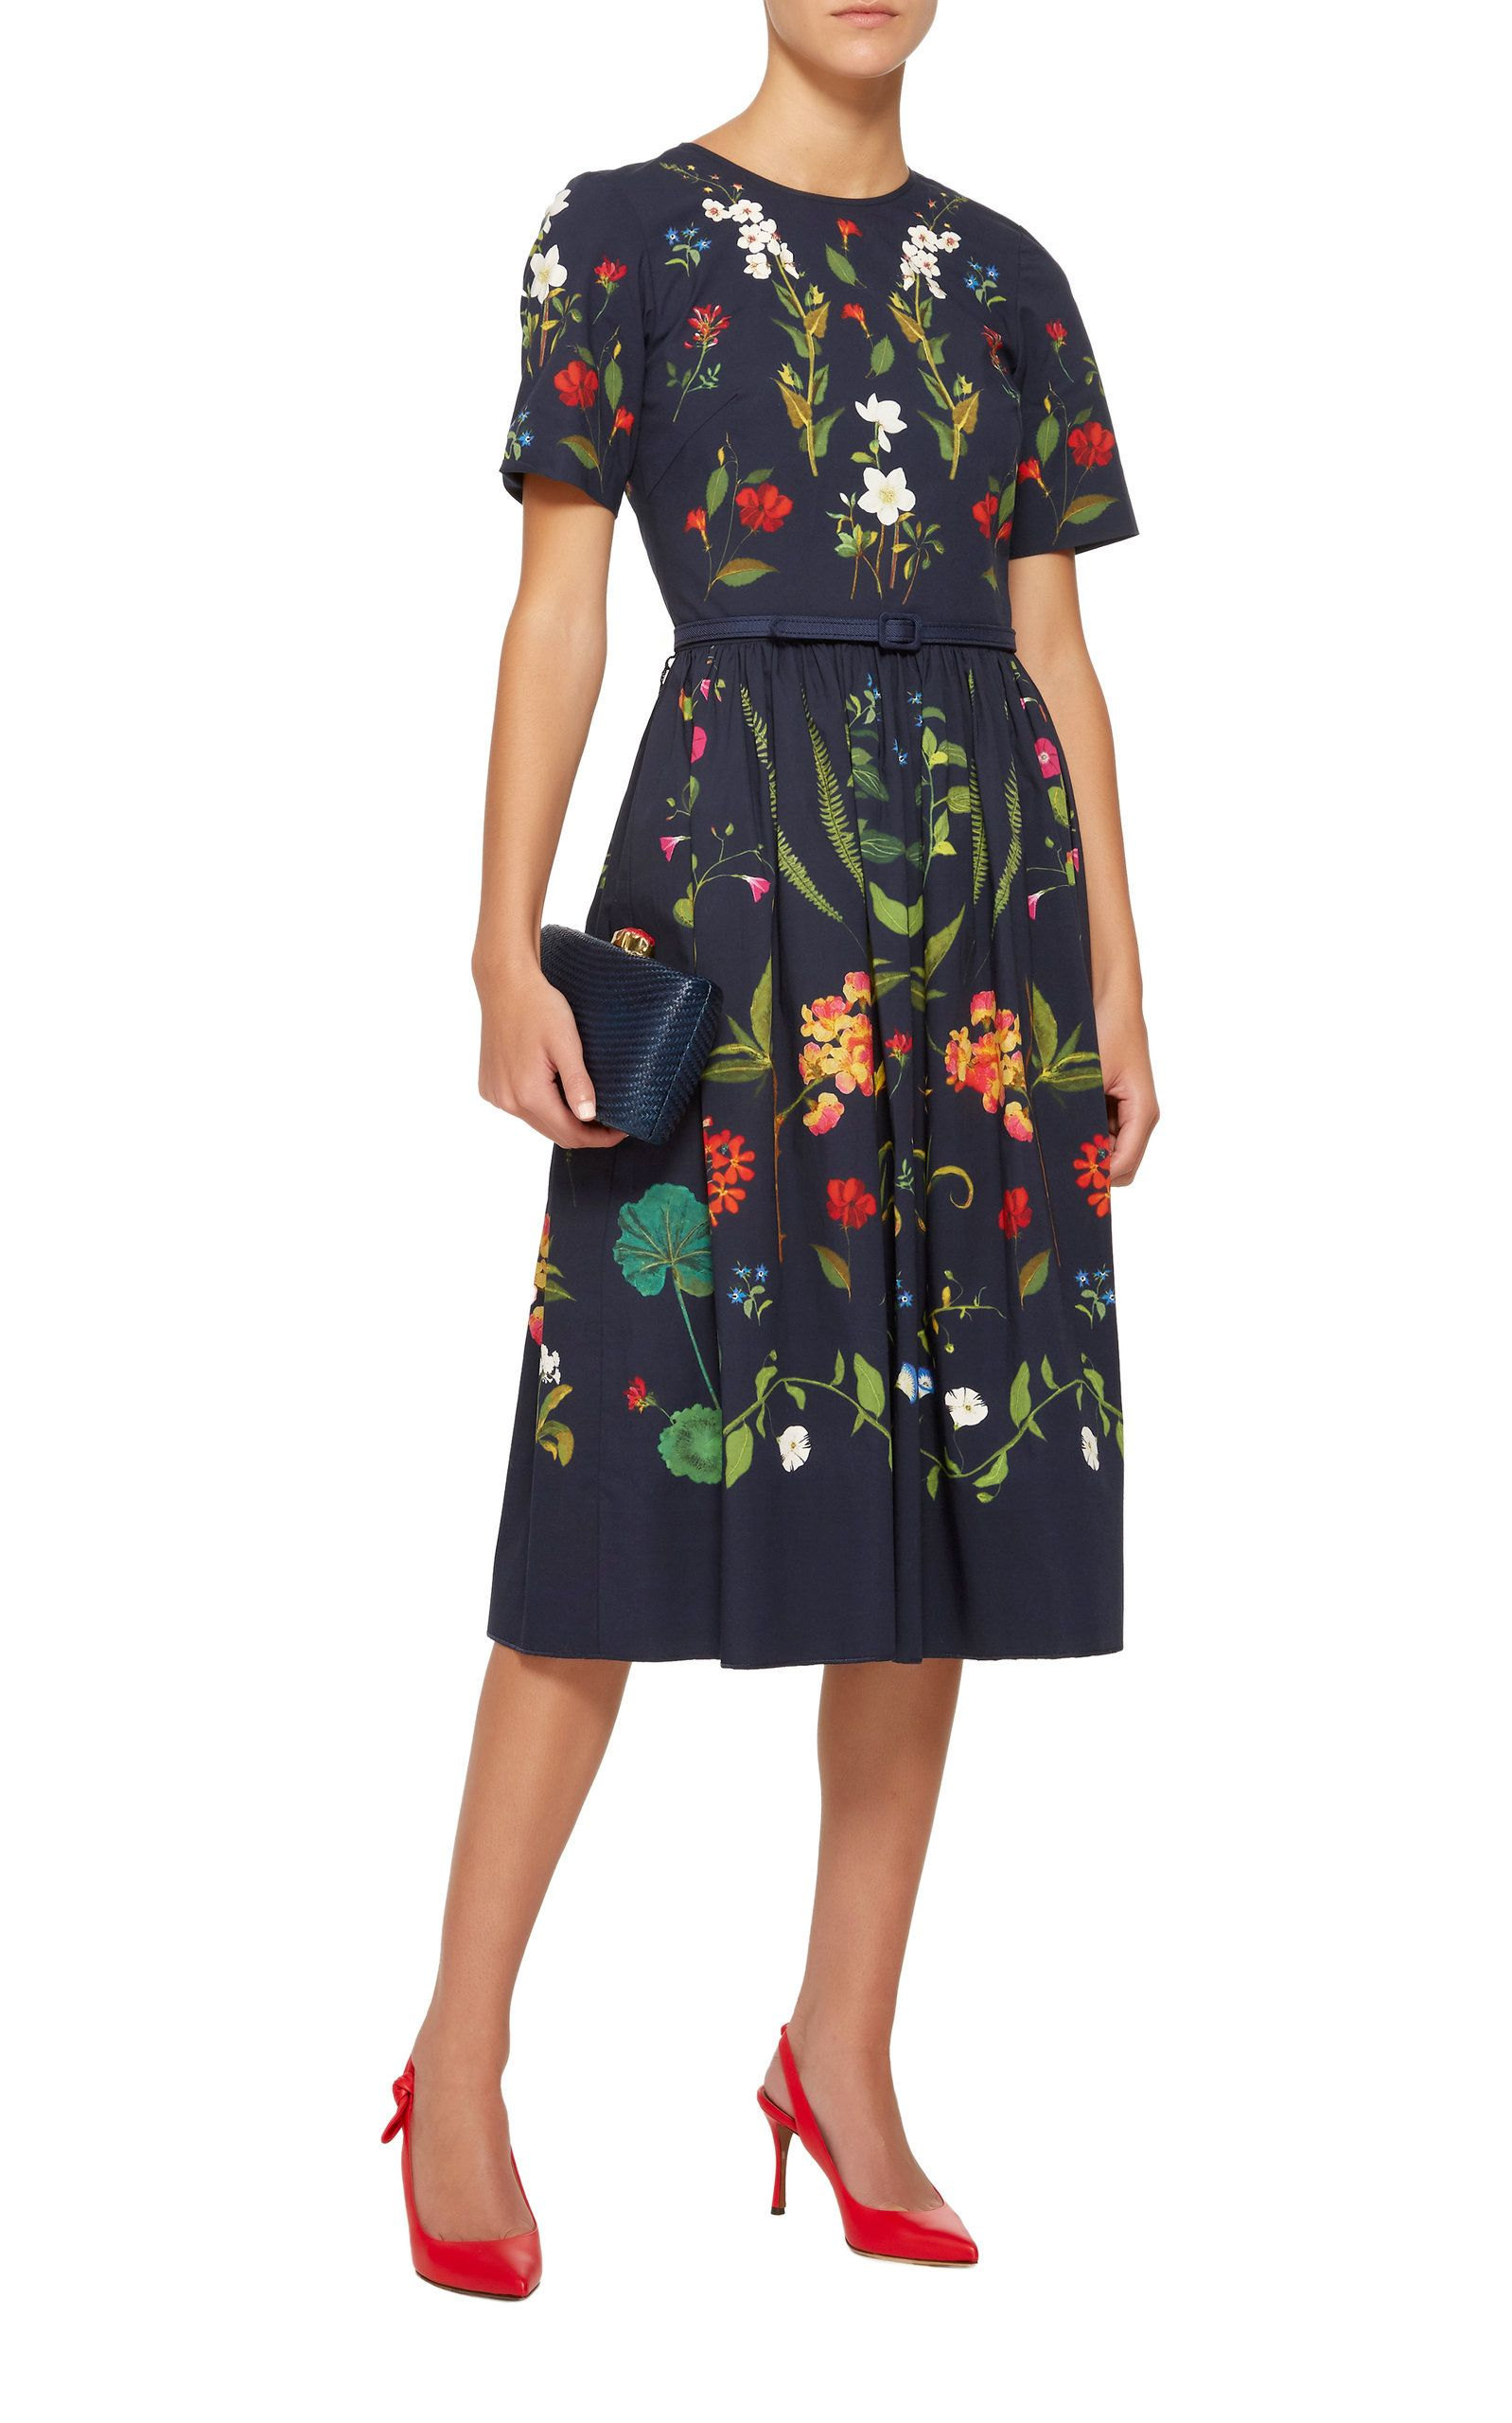 Floral Embroidered Stretch Cotton Midi Dress By Oscar De La Renta Now Available On Moda Operandi In 2021 Floral Dress Outfits Classic Dress Style Clothes For Women [ 2560 x 1598 Pixel ]